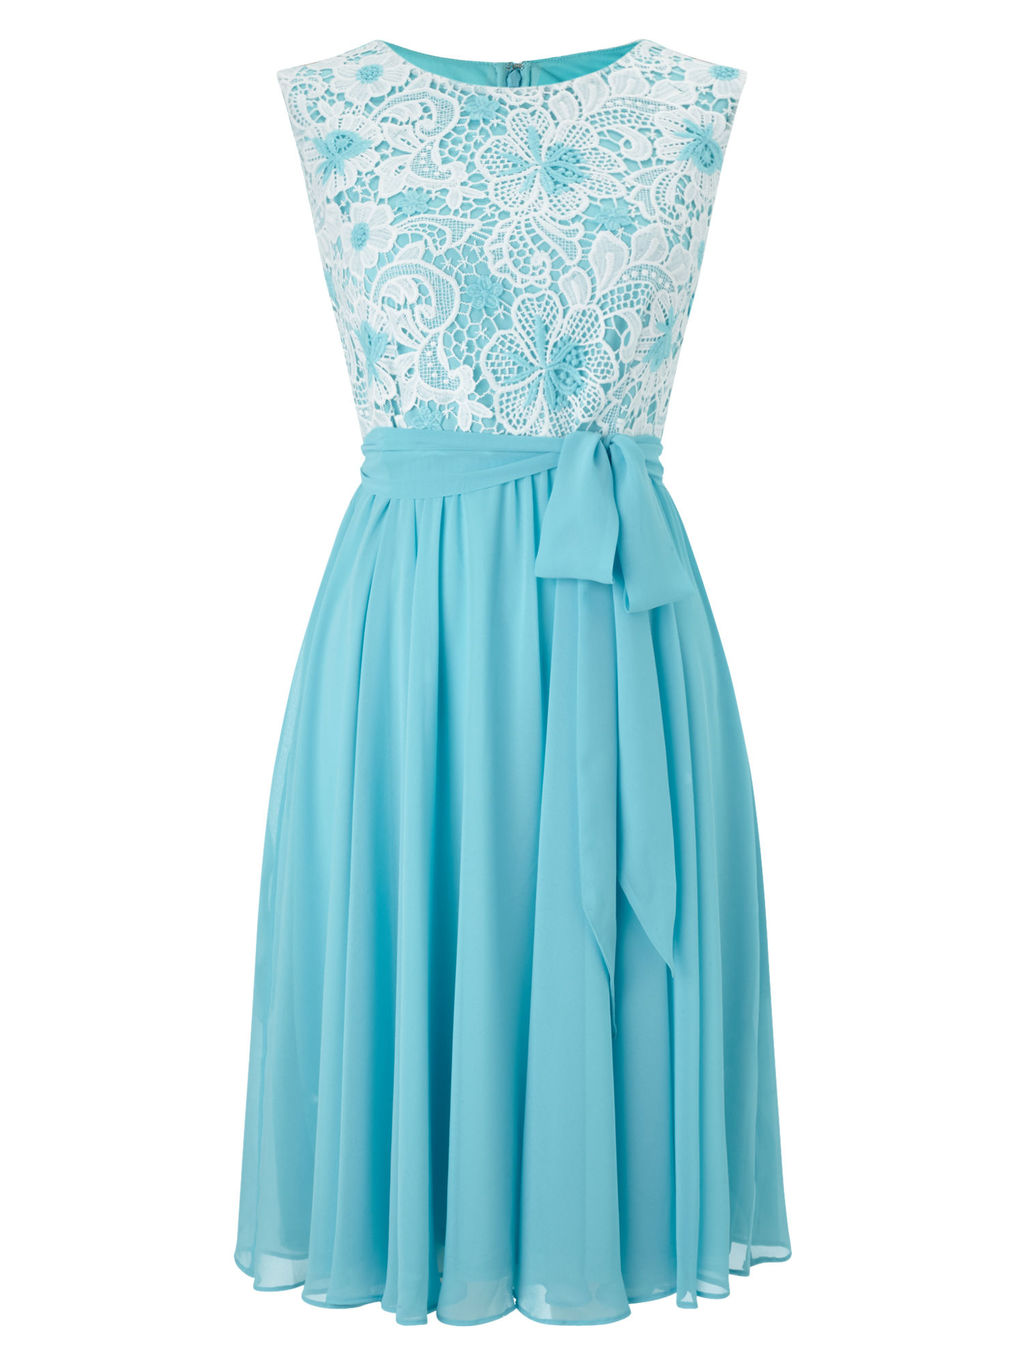 Lace Top Soft Prom Dress, Blue/Multi - sleeve style: sleeveless; style: prom dress; waist detail: belted waist/tie at waist/drawstring; secondary colour: white; predominant colour: turquoise; occasions: evening, occasion; length: just above the knee; fit: fitted at waist & bust; fibres: polyester/polyamide - 100%; neckline: crew; hip detail: subtle/flattering hip detail; sleeve length: sleeveless; texture group: sheer fabrics/chiffon/organza etc.; pattern type: fabric; pattern size: standard; pattern: patterned/print; season: s/s 2016; wardrobe: event; embellishment: contrast fabric; embellishment location: bust